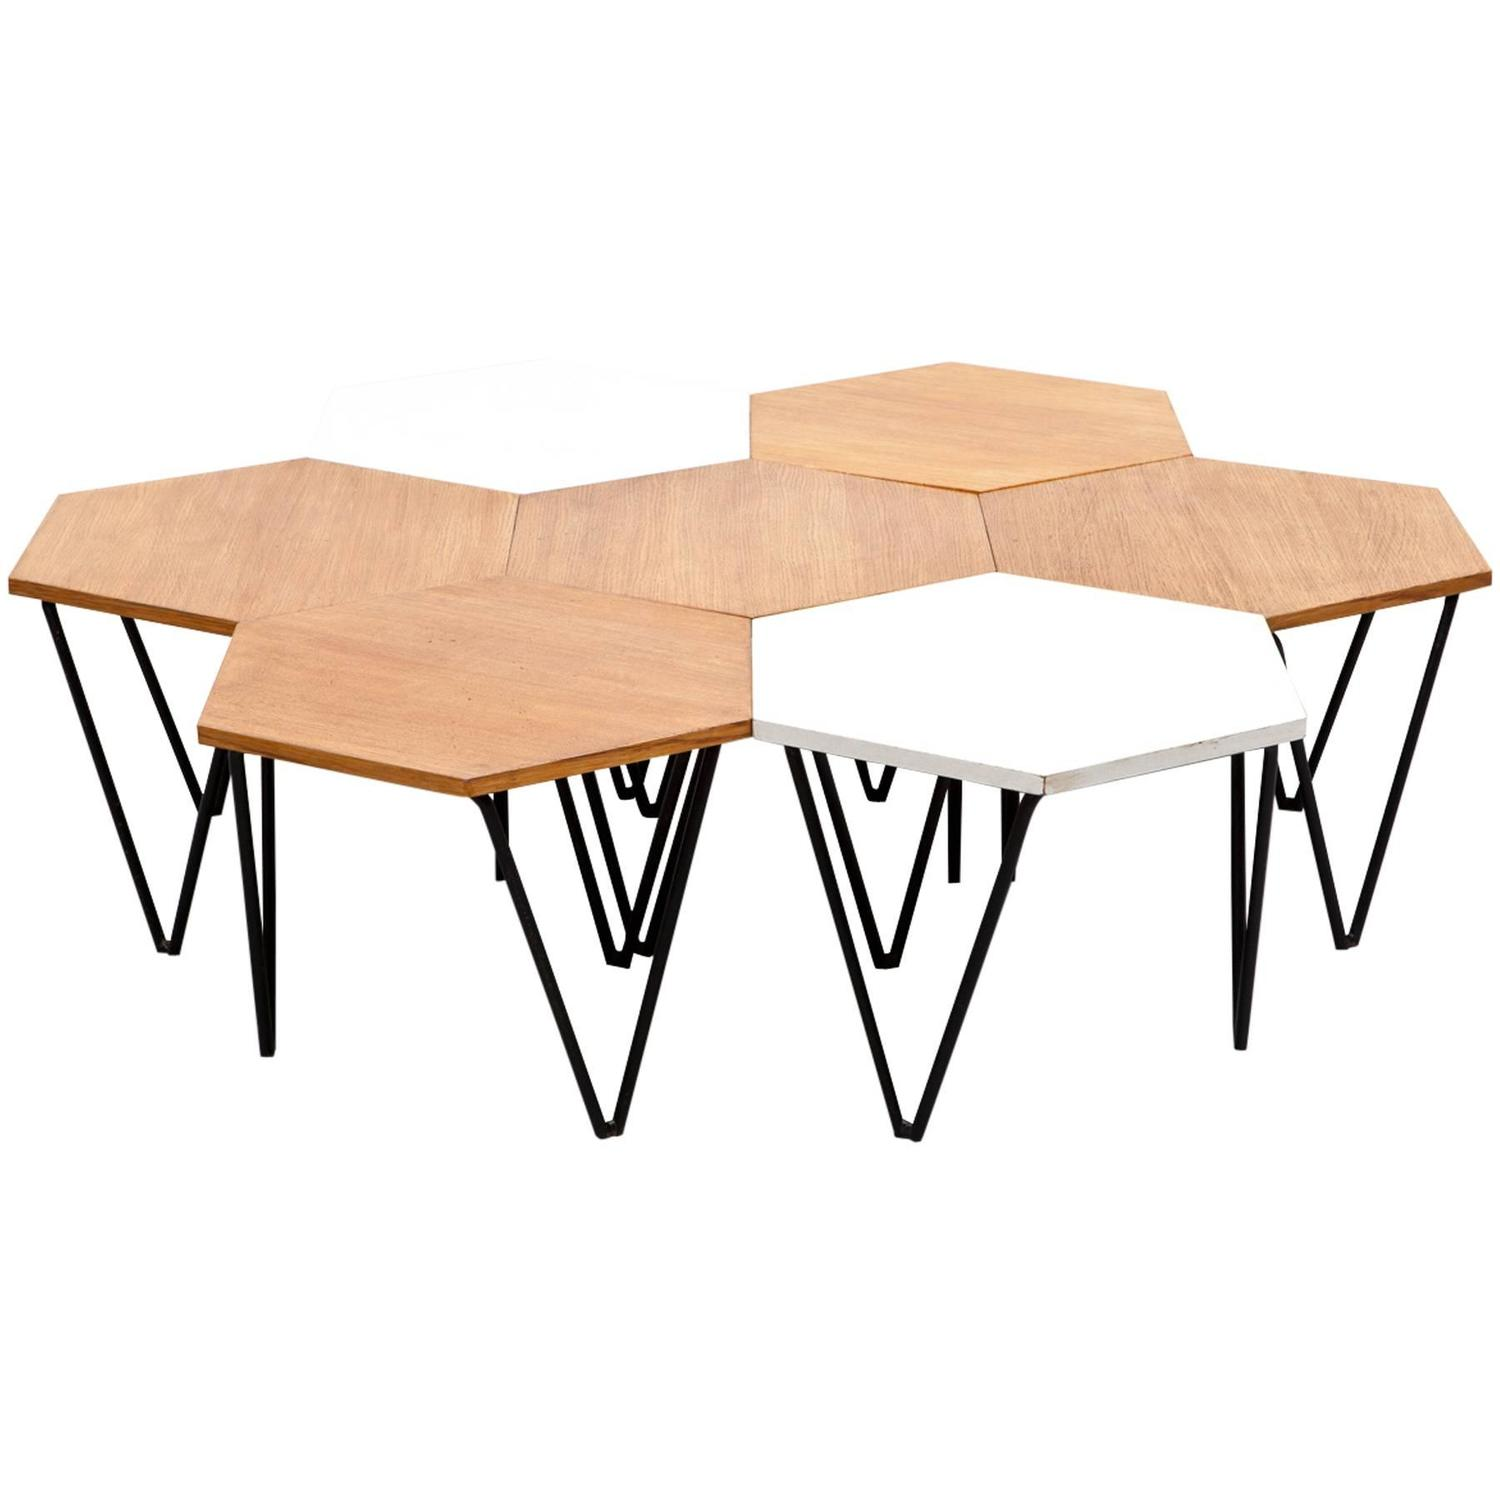 Gio Ponti Segmented Coffee Tables For Sale at 1stdibs